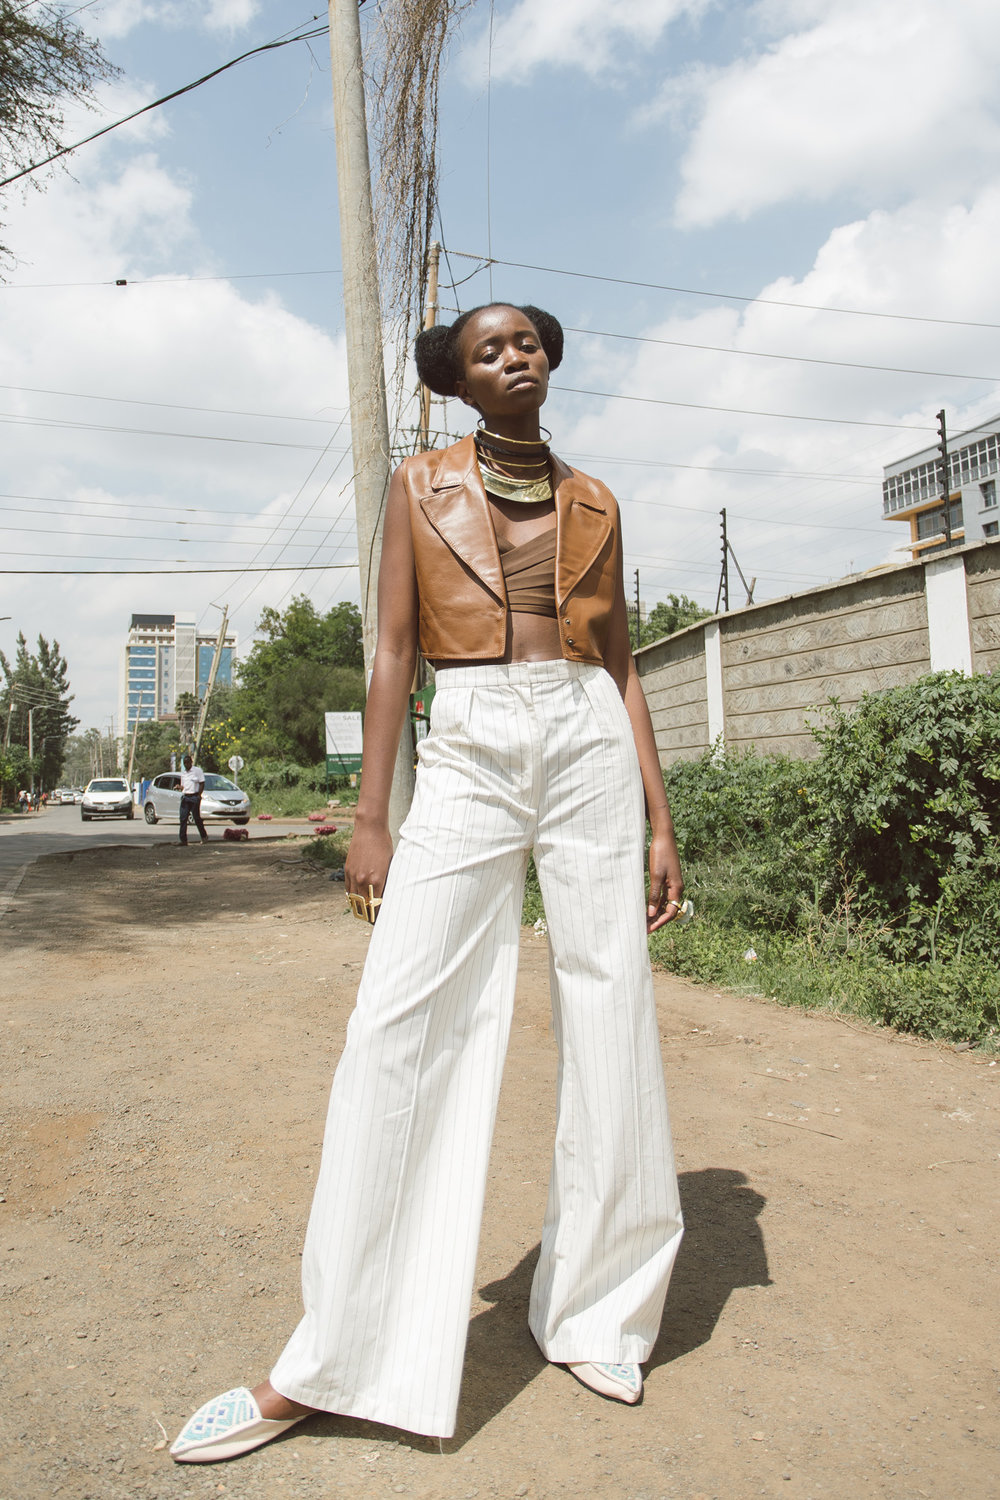 Anita wears M+K waistcoat, Lulu Mutuli bra top, Anyango Mpinga trousers, AdèleDejak choker and necklace and rings, Embody rings, Zinj Design slippers